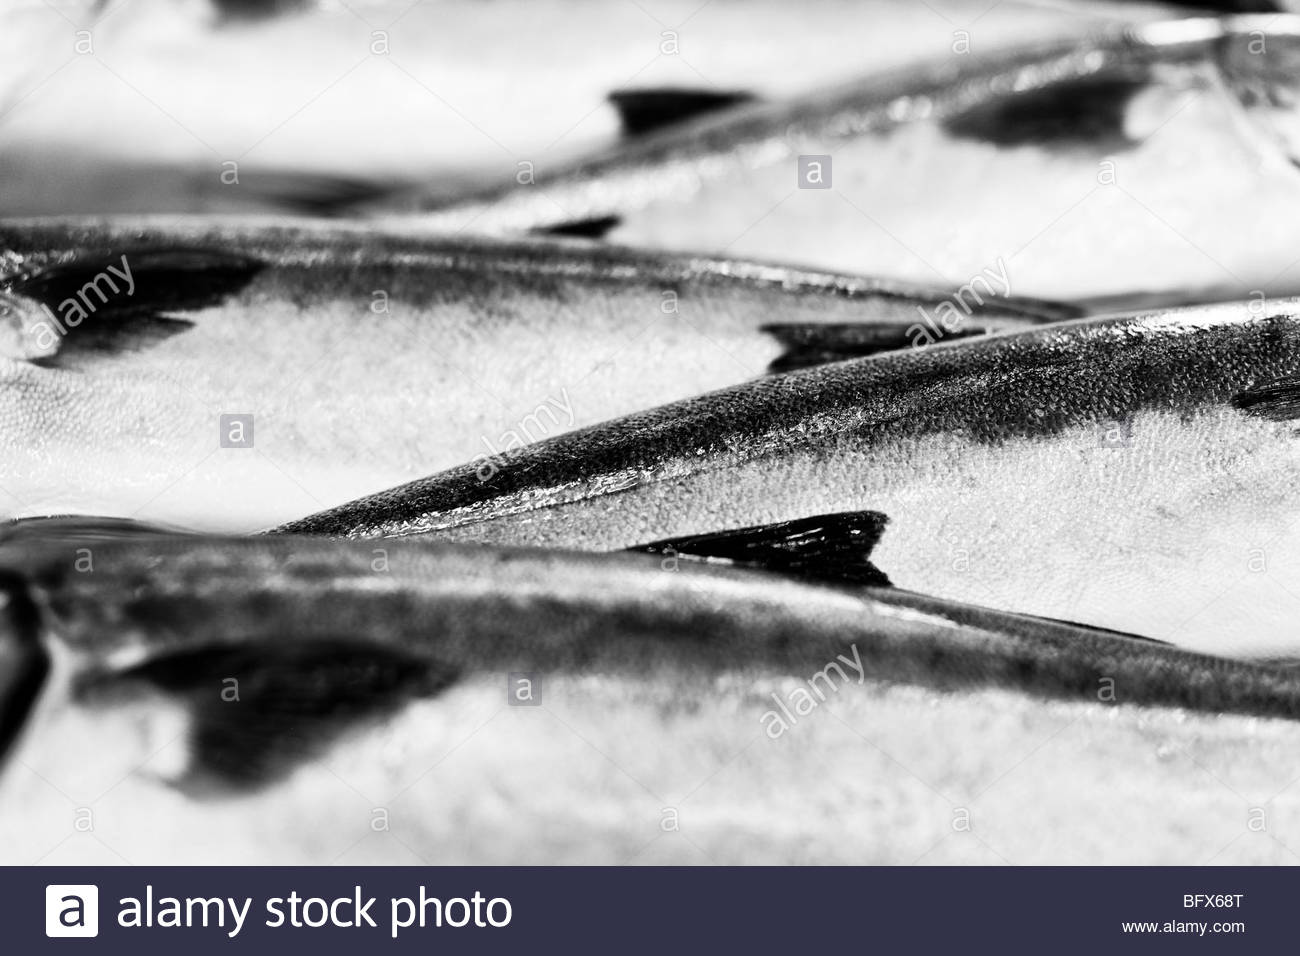 raw fish on ice - Stock Image